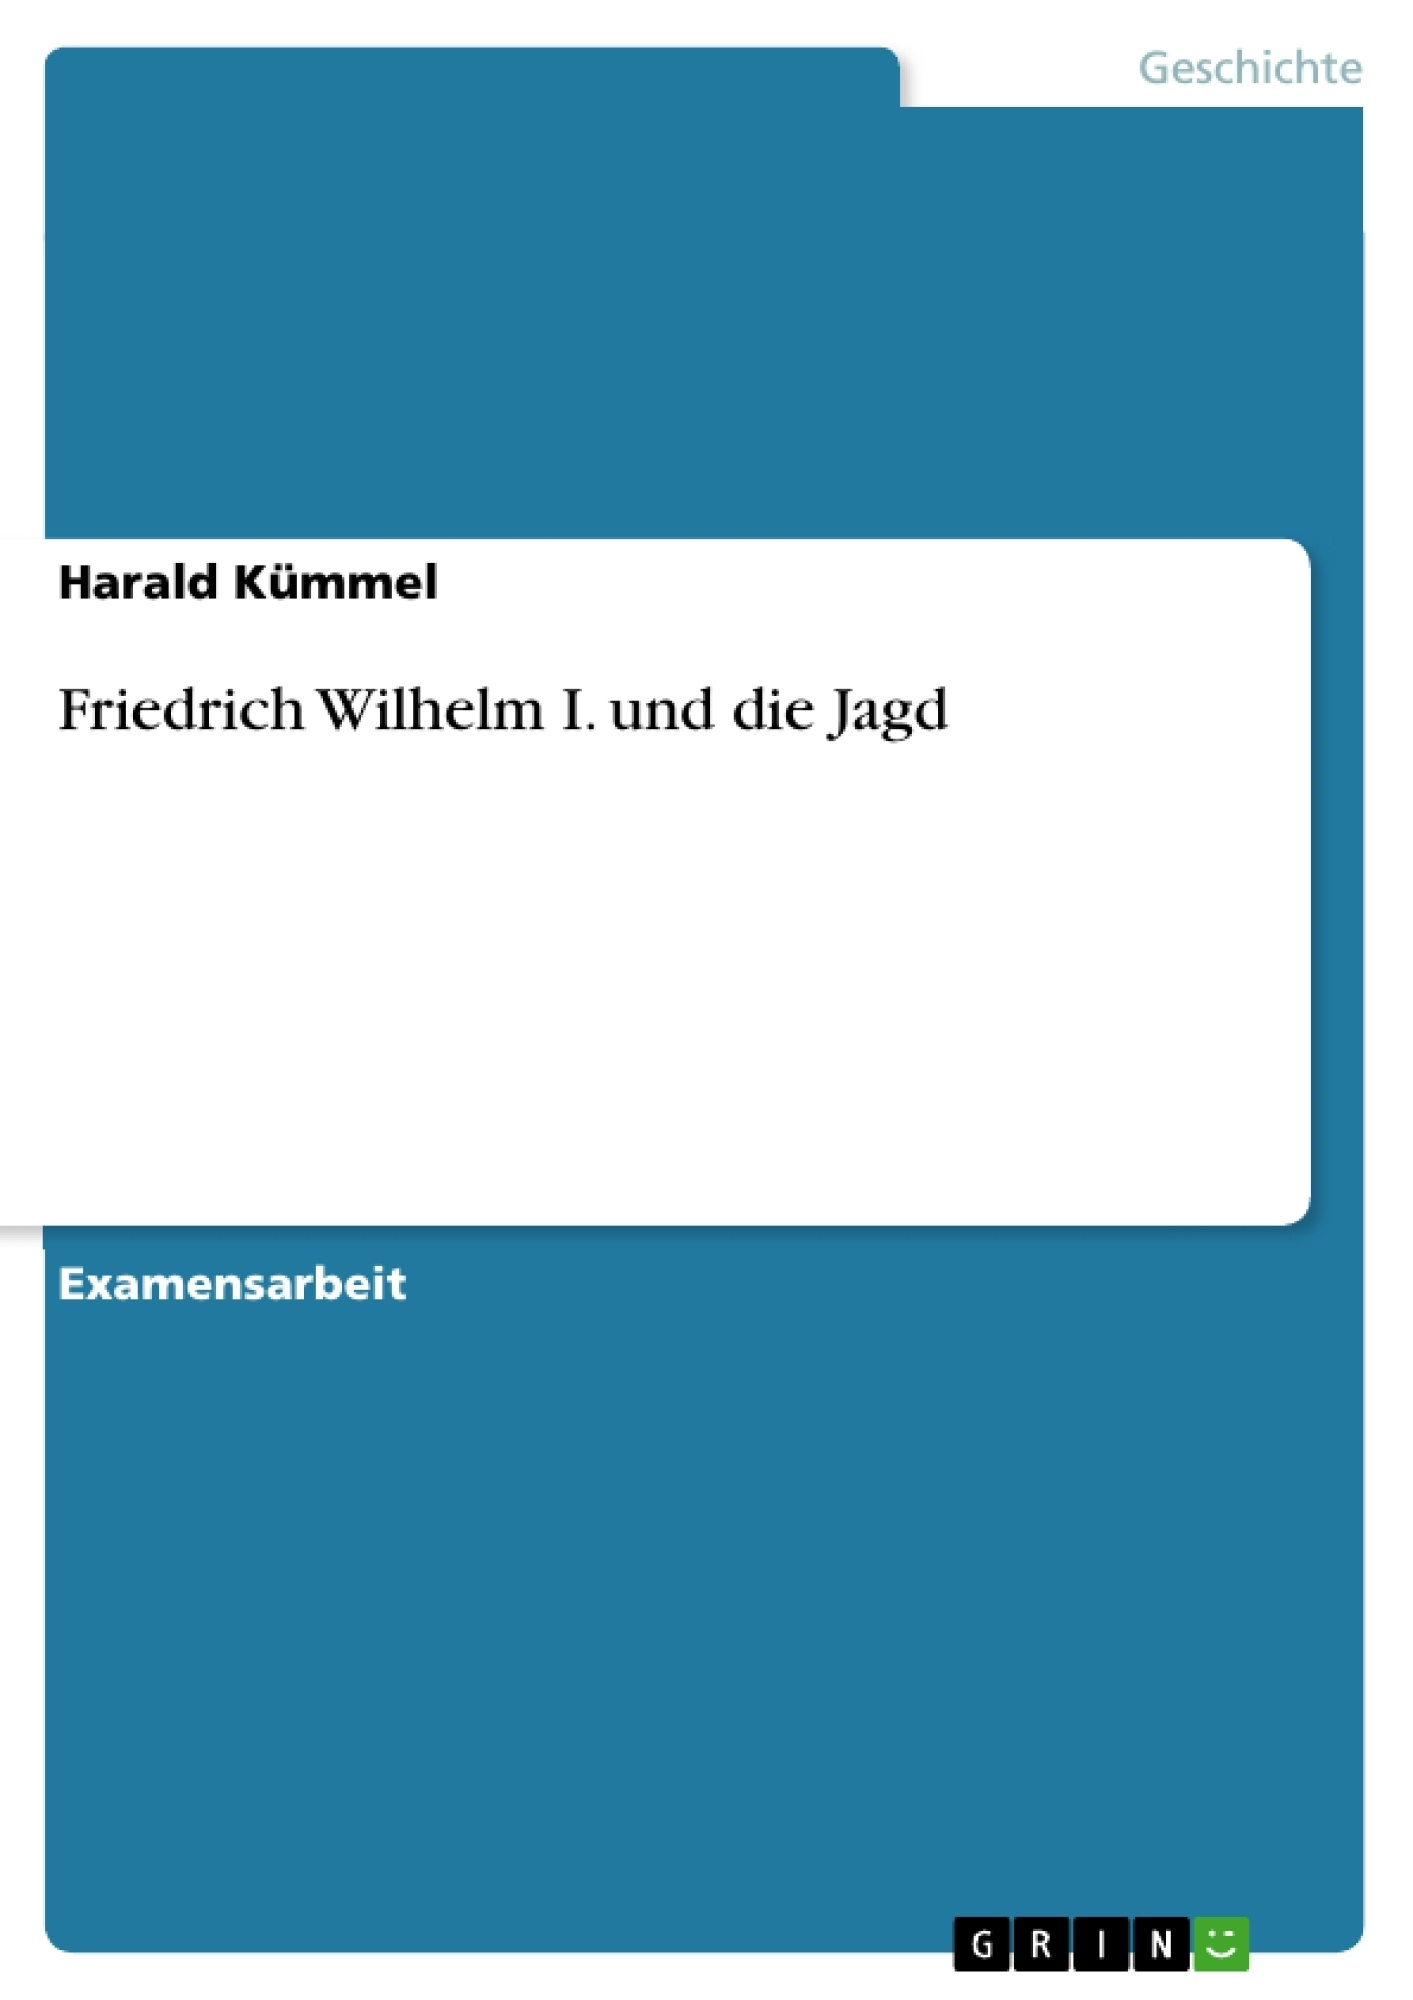 friedrich wilhelm froebel essay Fredrich froebel (fröbel) best known for his work on kindergardens and play, froebel has a lot to say for informal educators friedrich wilhelm august froebel (fröbel) university of london press series of essays on key elements of fröbel's thought and practice websites.